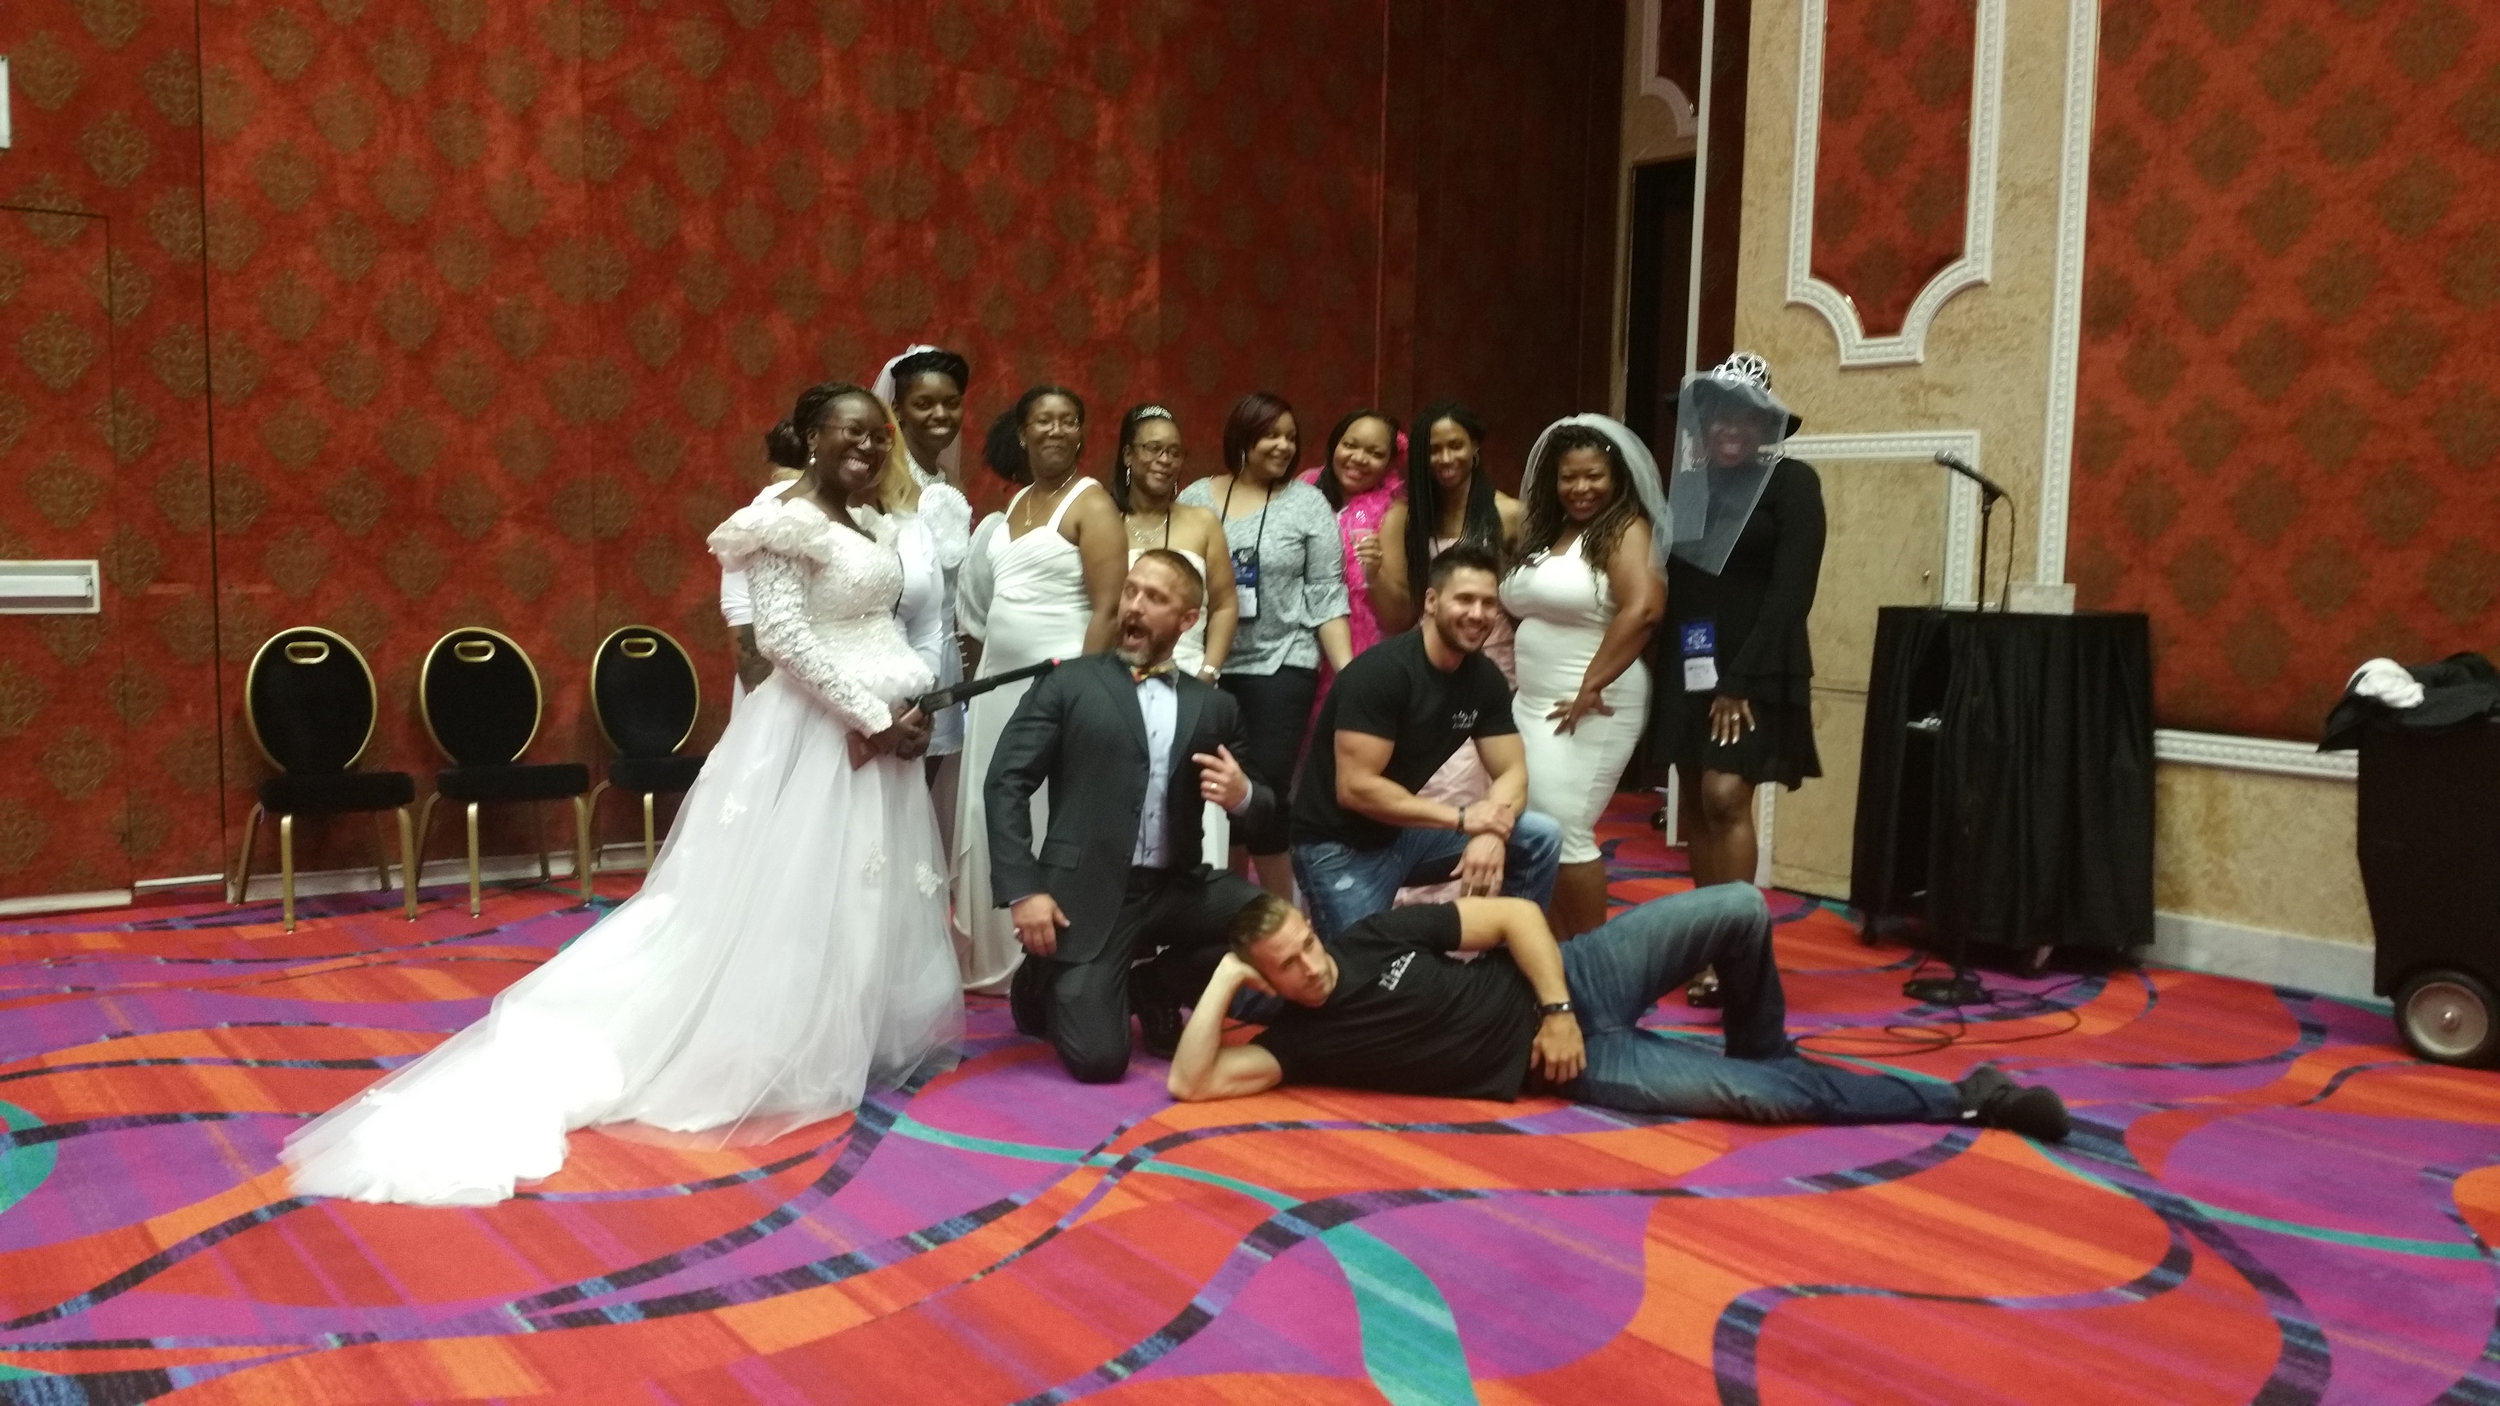 One my favorite events of the convention: Bridesmaids, Bachelors and Bubbly.